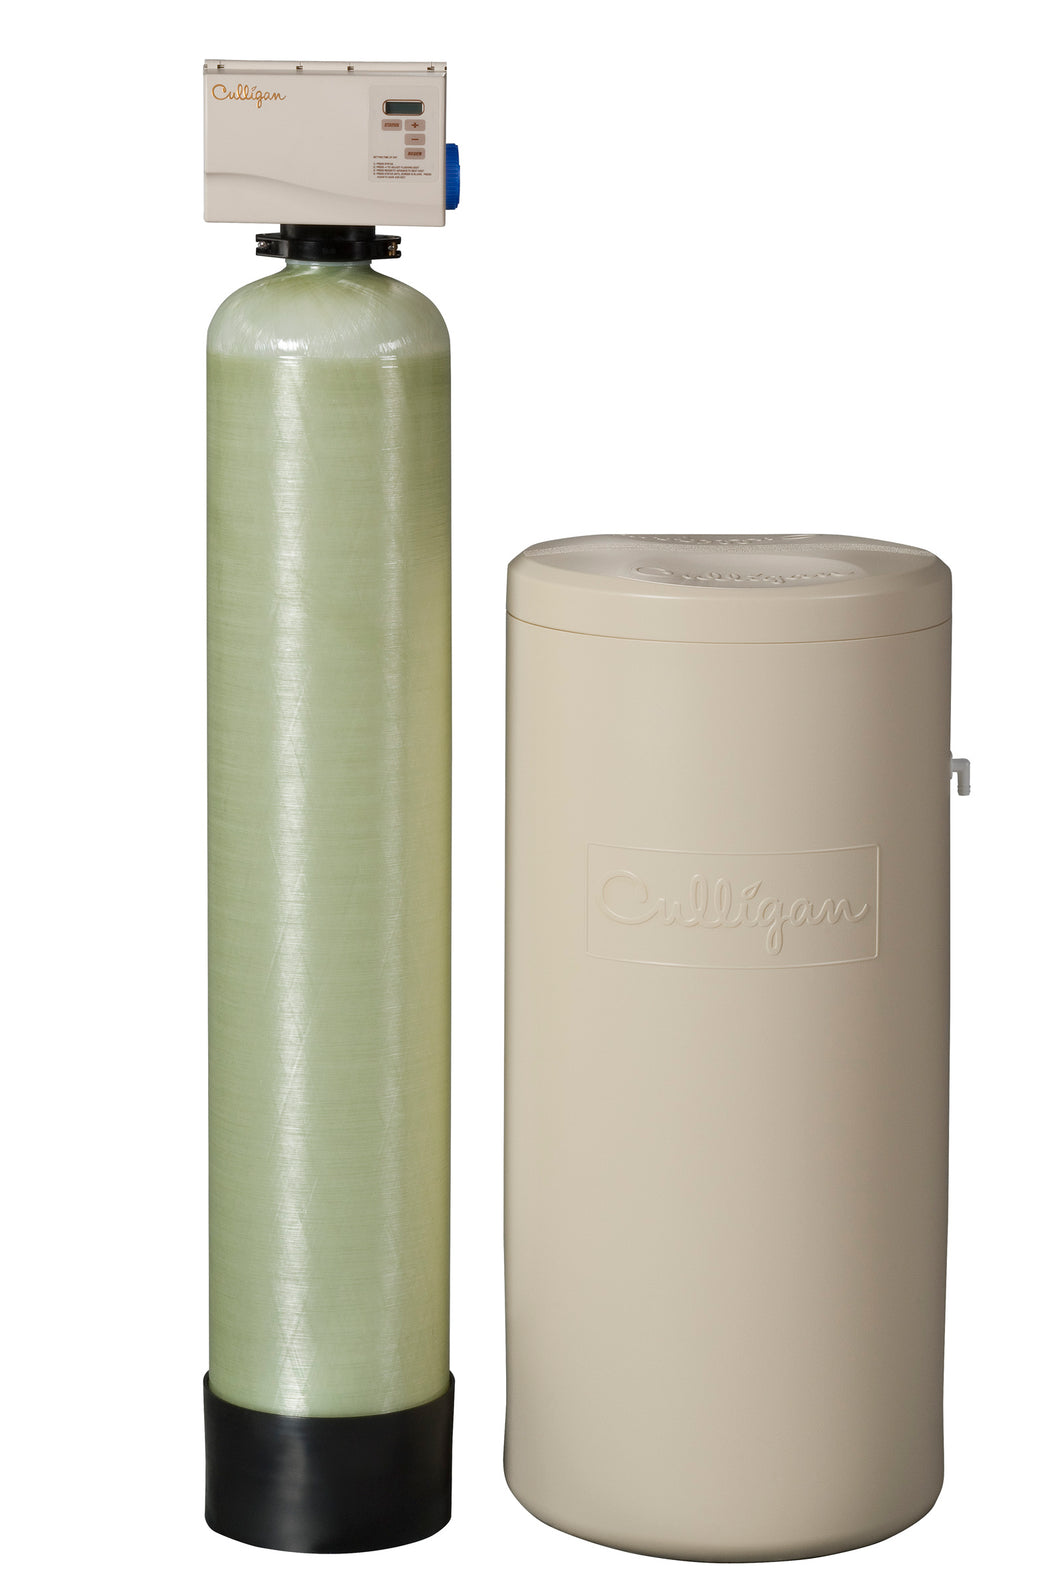 Culligan Medallist Plus Water Softener